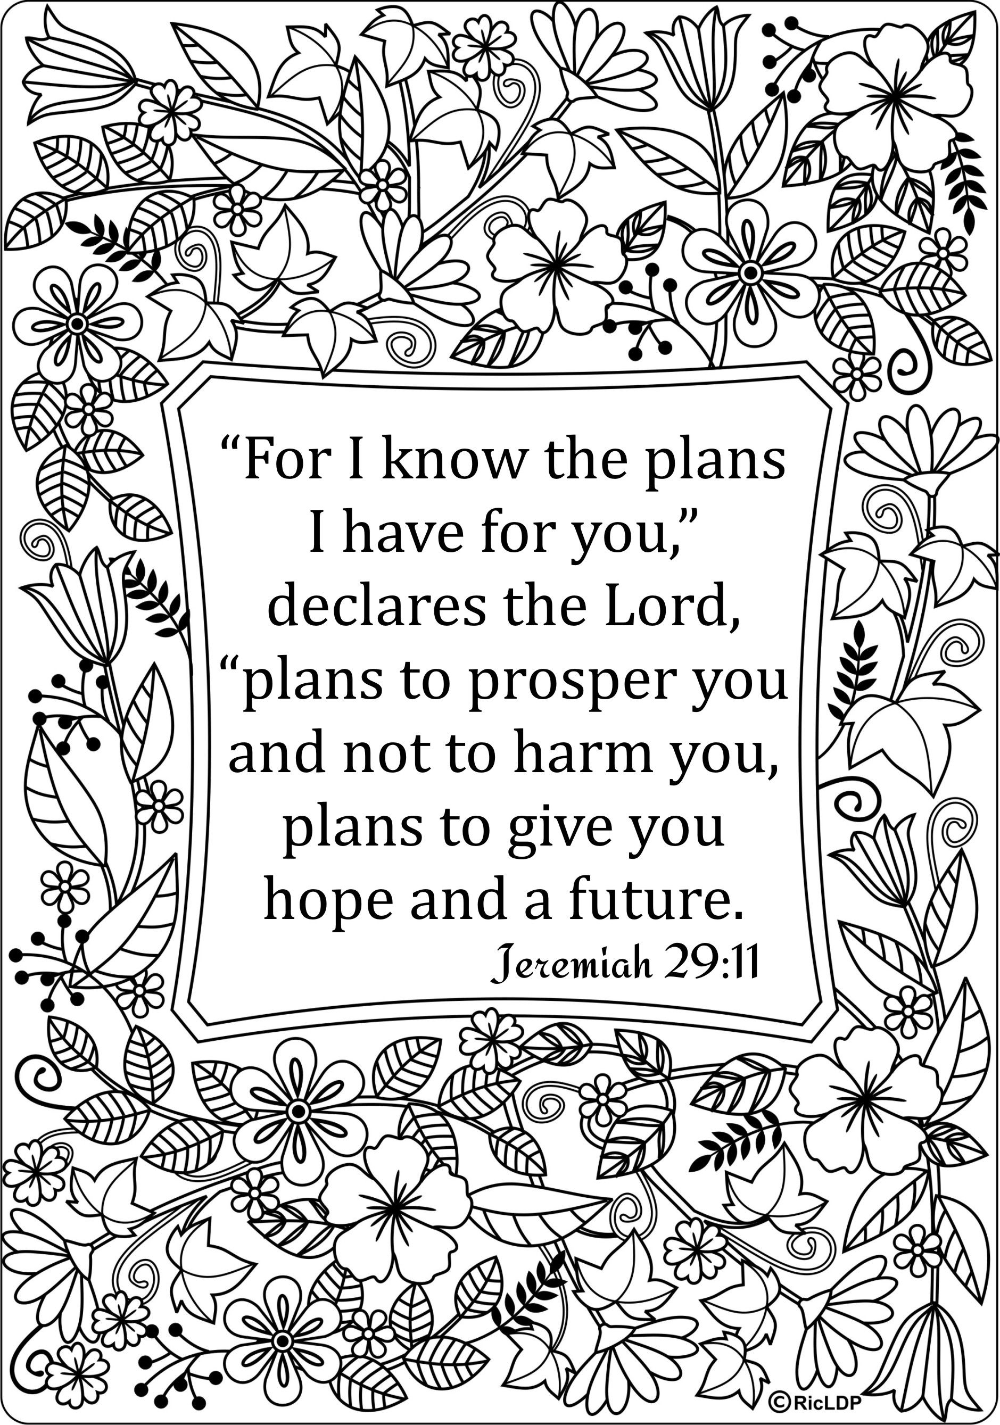 Christian 2406 Info Bible Verse Coloring Page Bible Coloring Pages Bible Verse Coloring